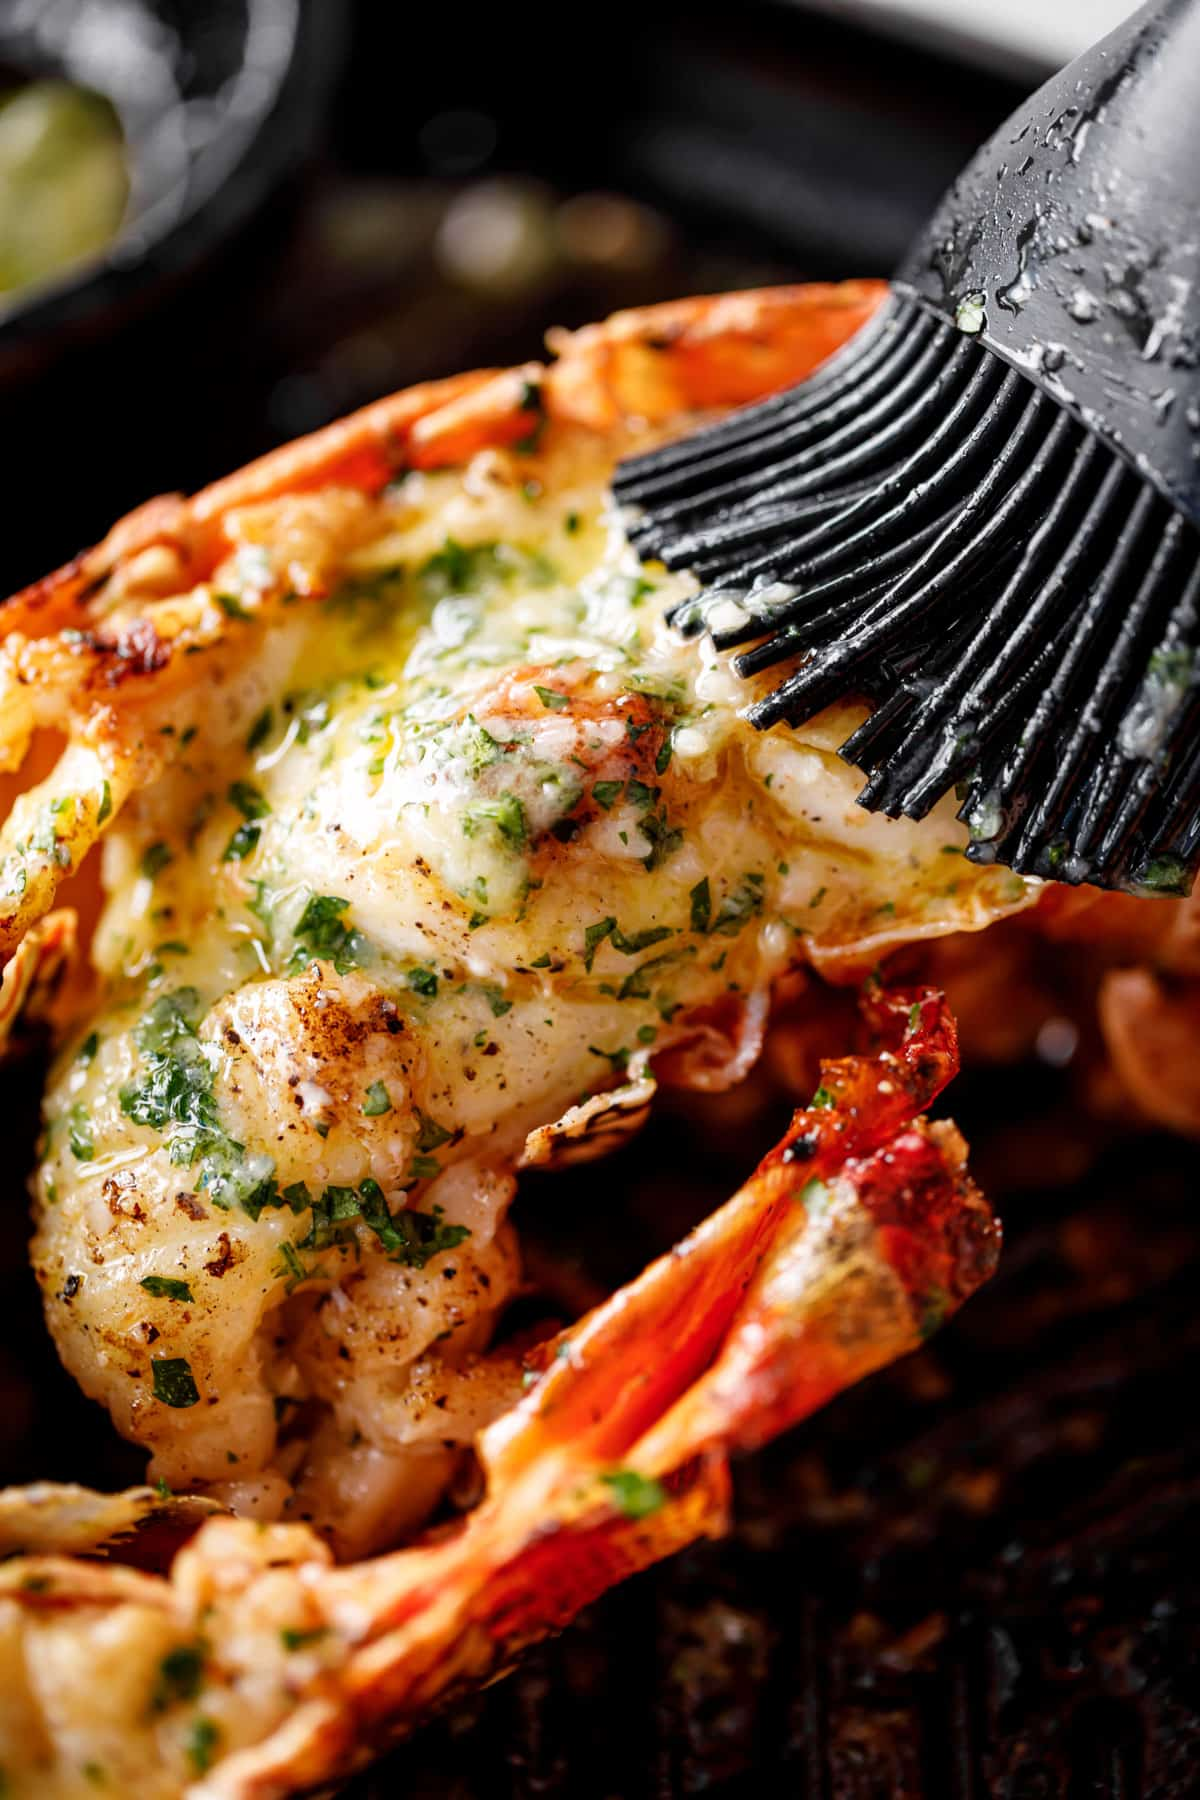 Grilled Lobster Tails brushed with melted garlic herb butter on a black grill pan | cafedelites.com